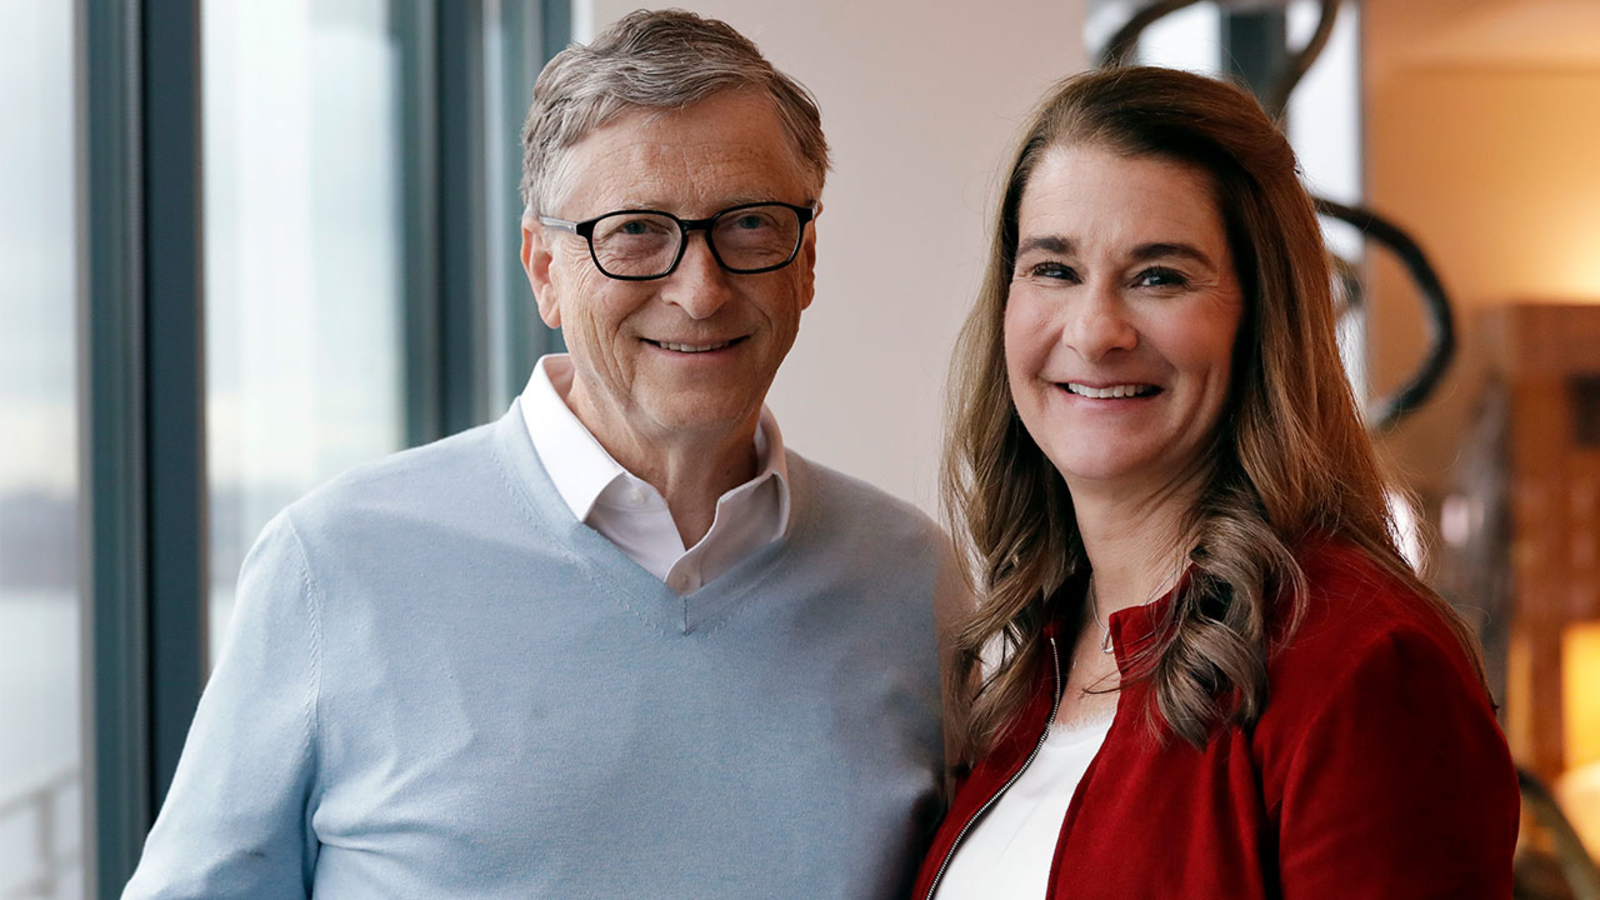 Bill Gates Divorce: Bill and Melinda Gates End Marriage 27 Years Later -  New York Latest News